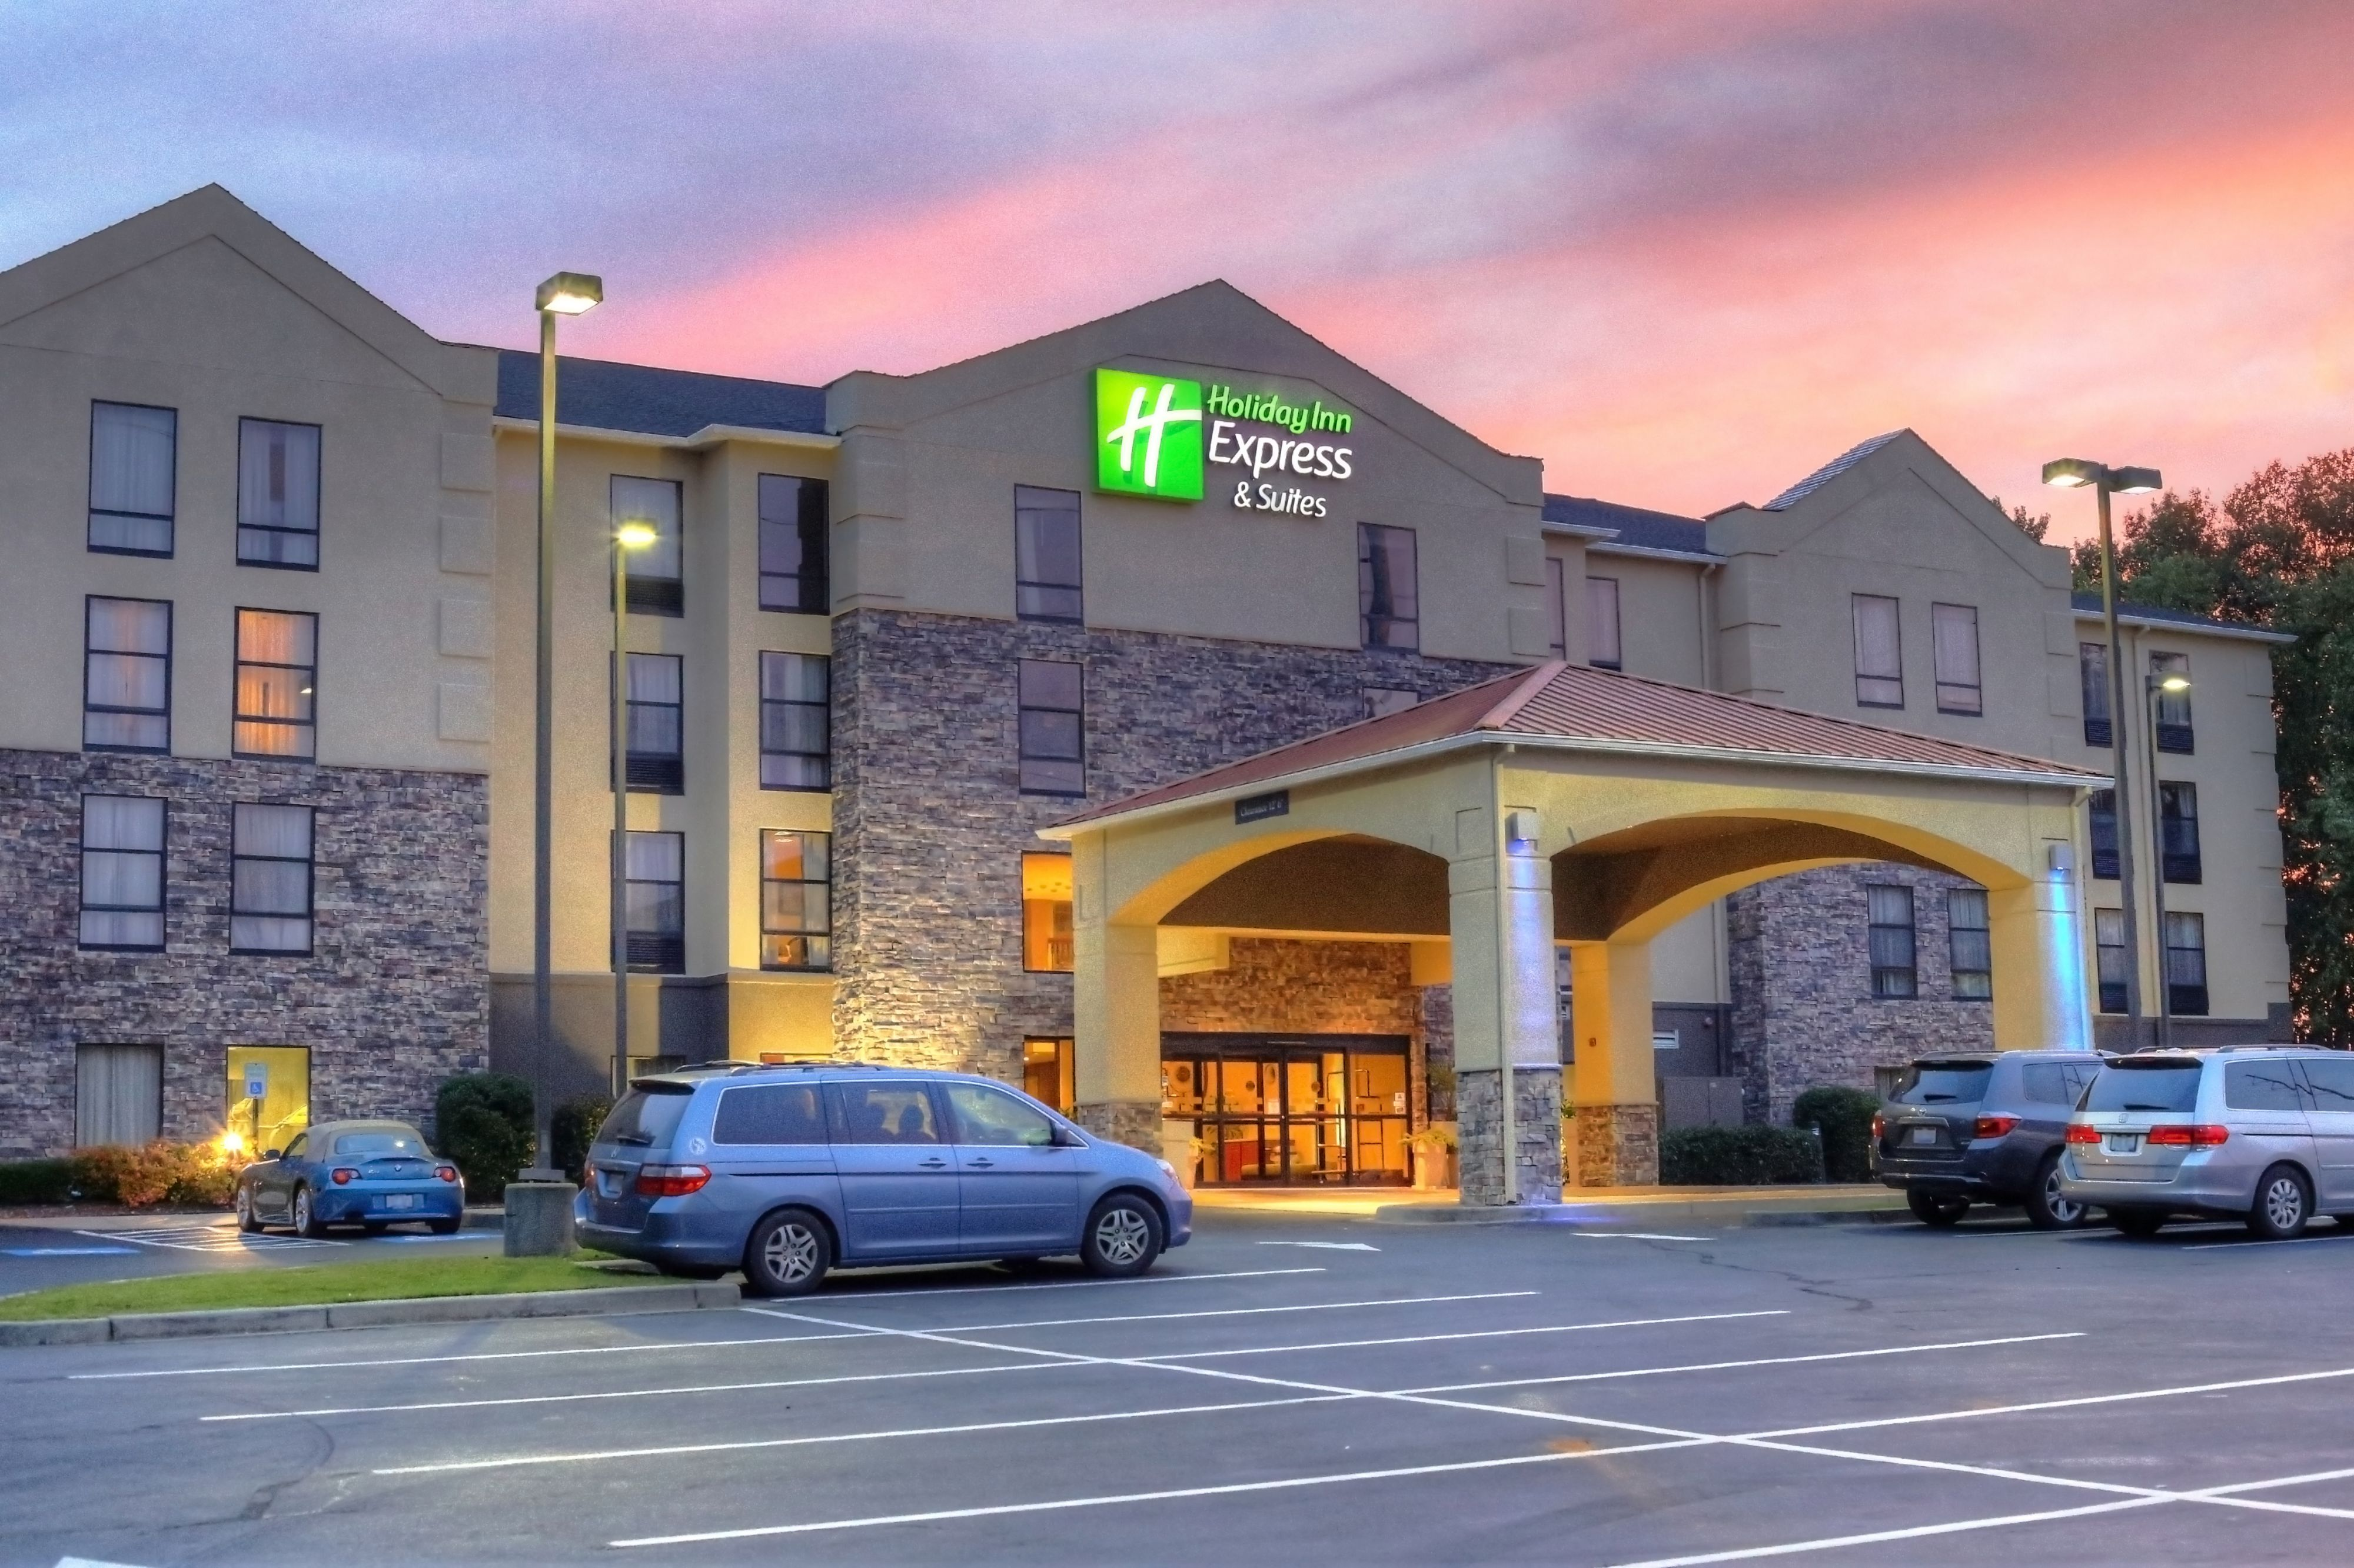 holiday inn express blowing rock south in blowing rock nc. Black Bedroom Furniture Sets. Home Design Ideas